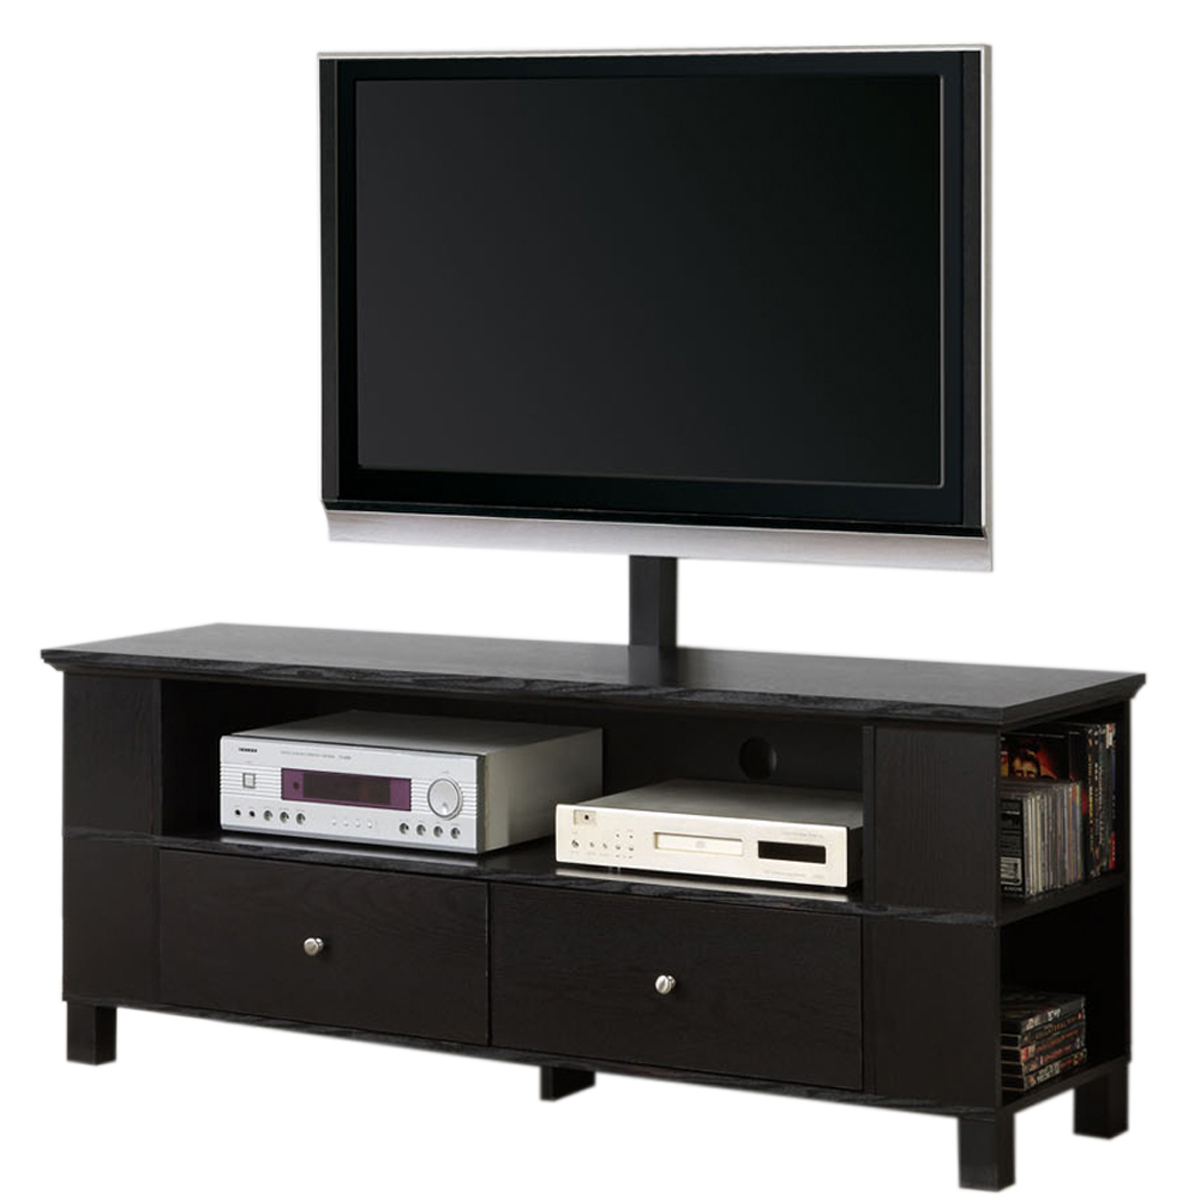 60 inch wood tv stand with mount and storage by walker edison in tv stands. Black Bedroom Furniture Sets. Home Design Ideas